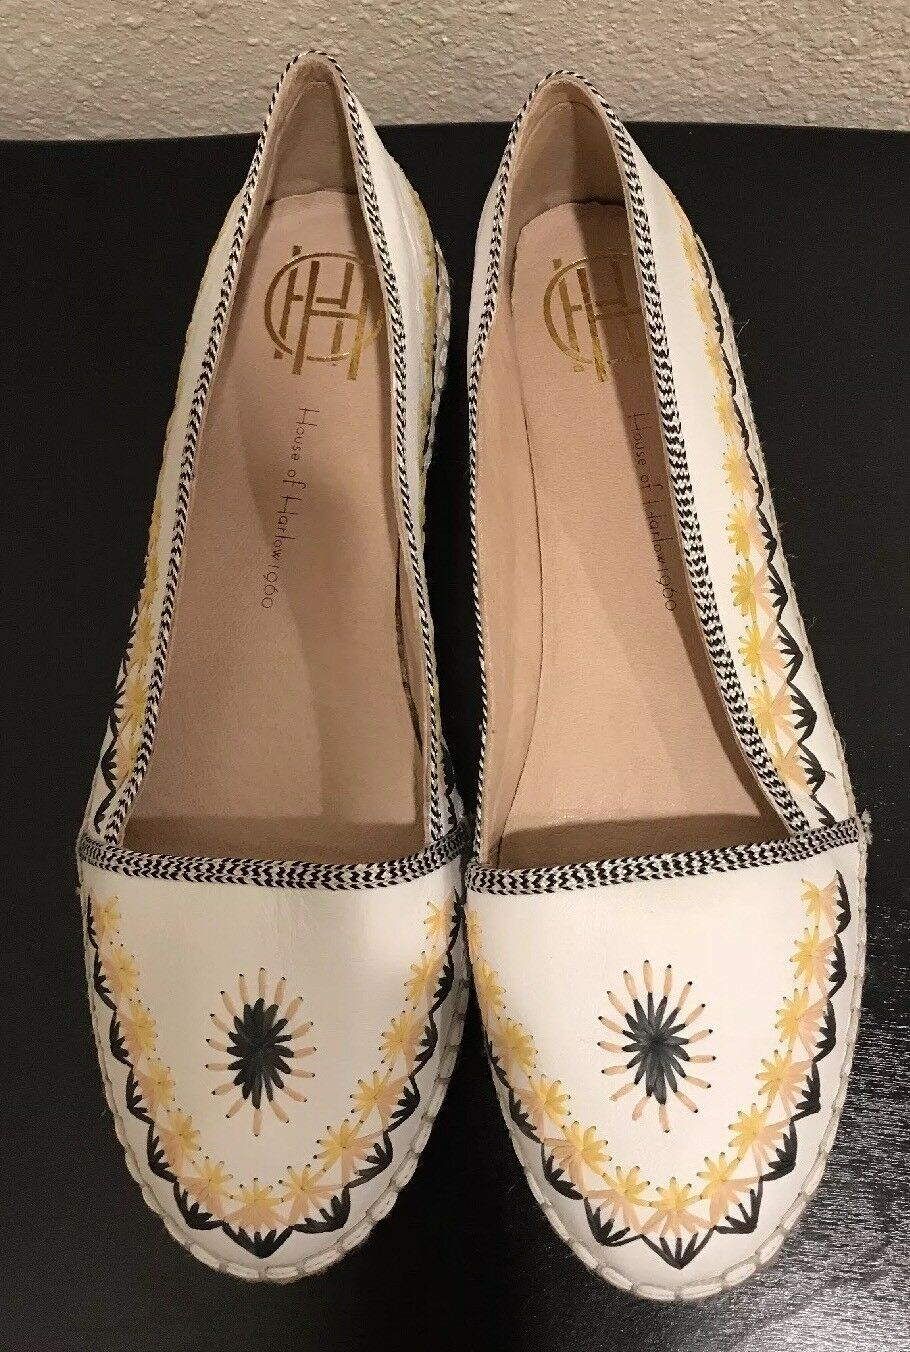 House Of Harlow 1960 Kole Flats Espadrilles Embrodierouge blanc Leather Jute 38